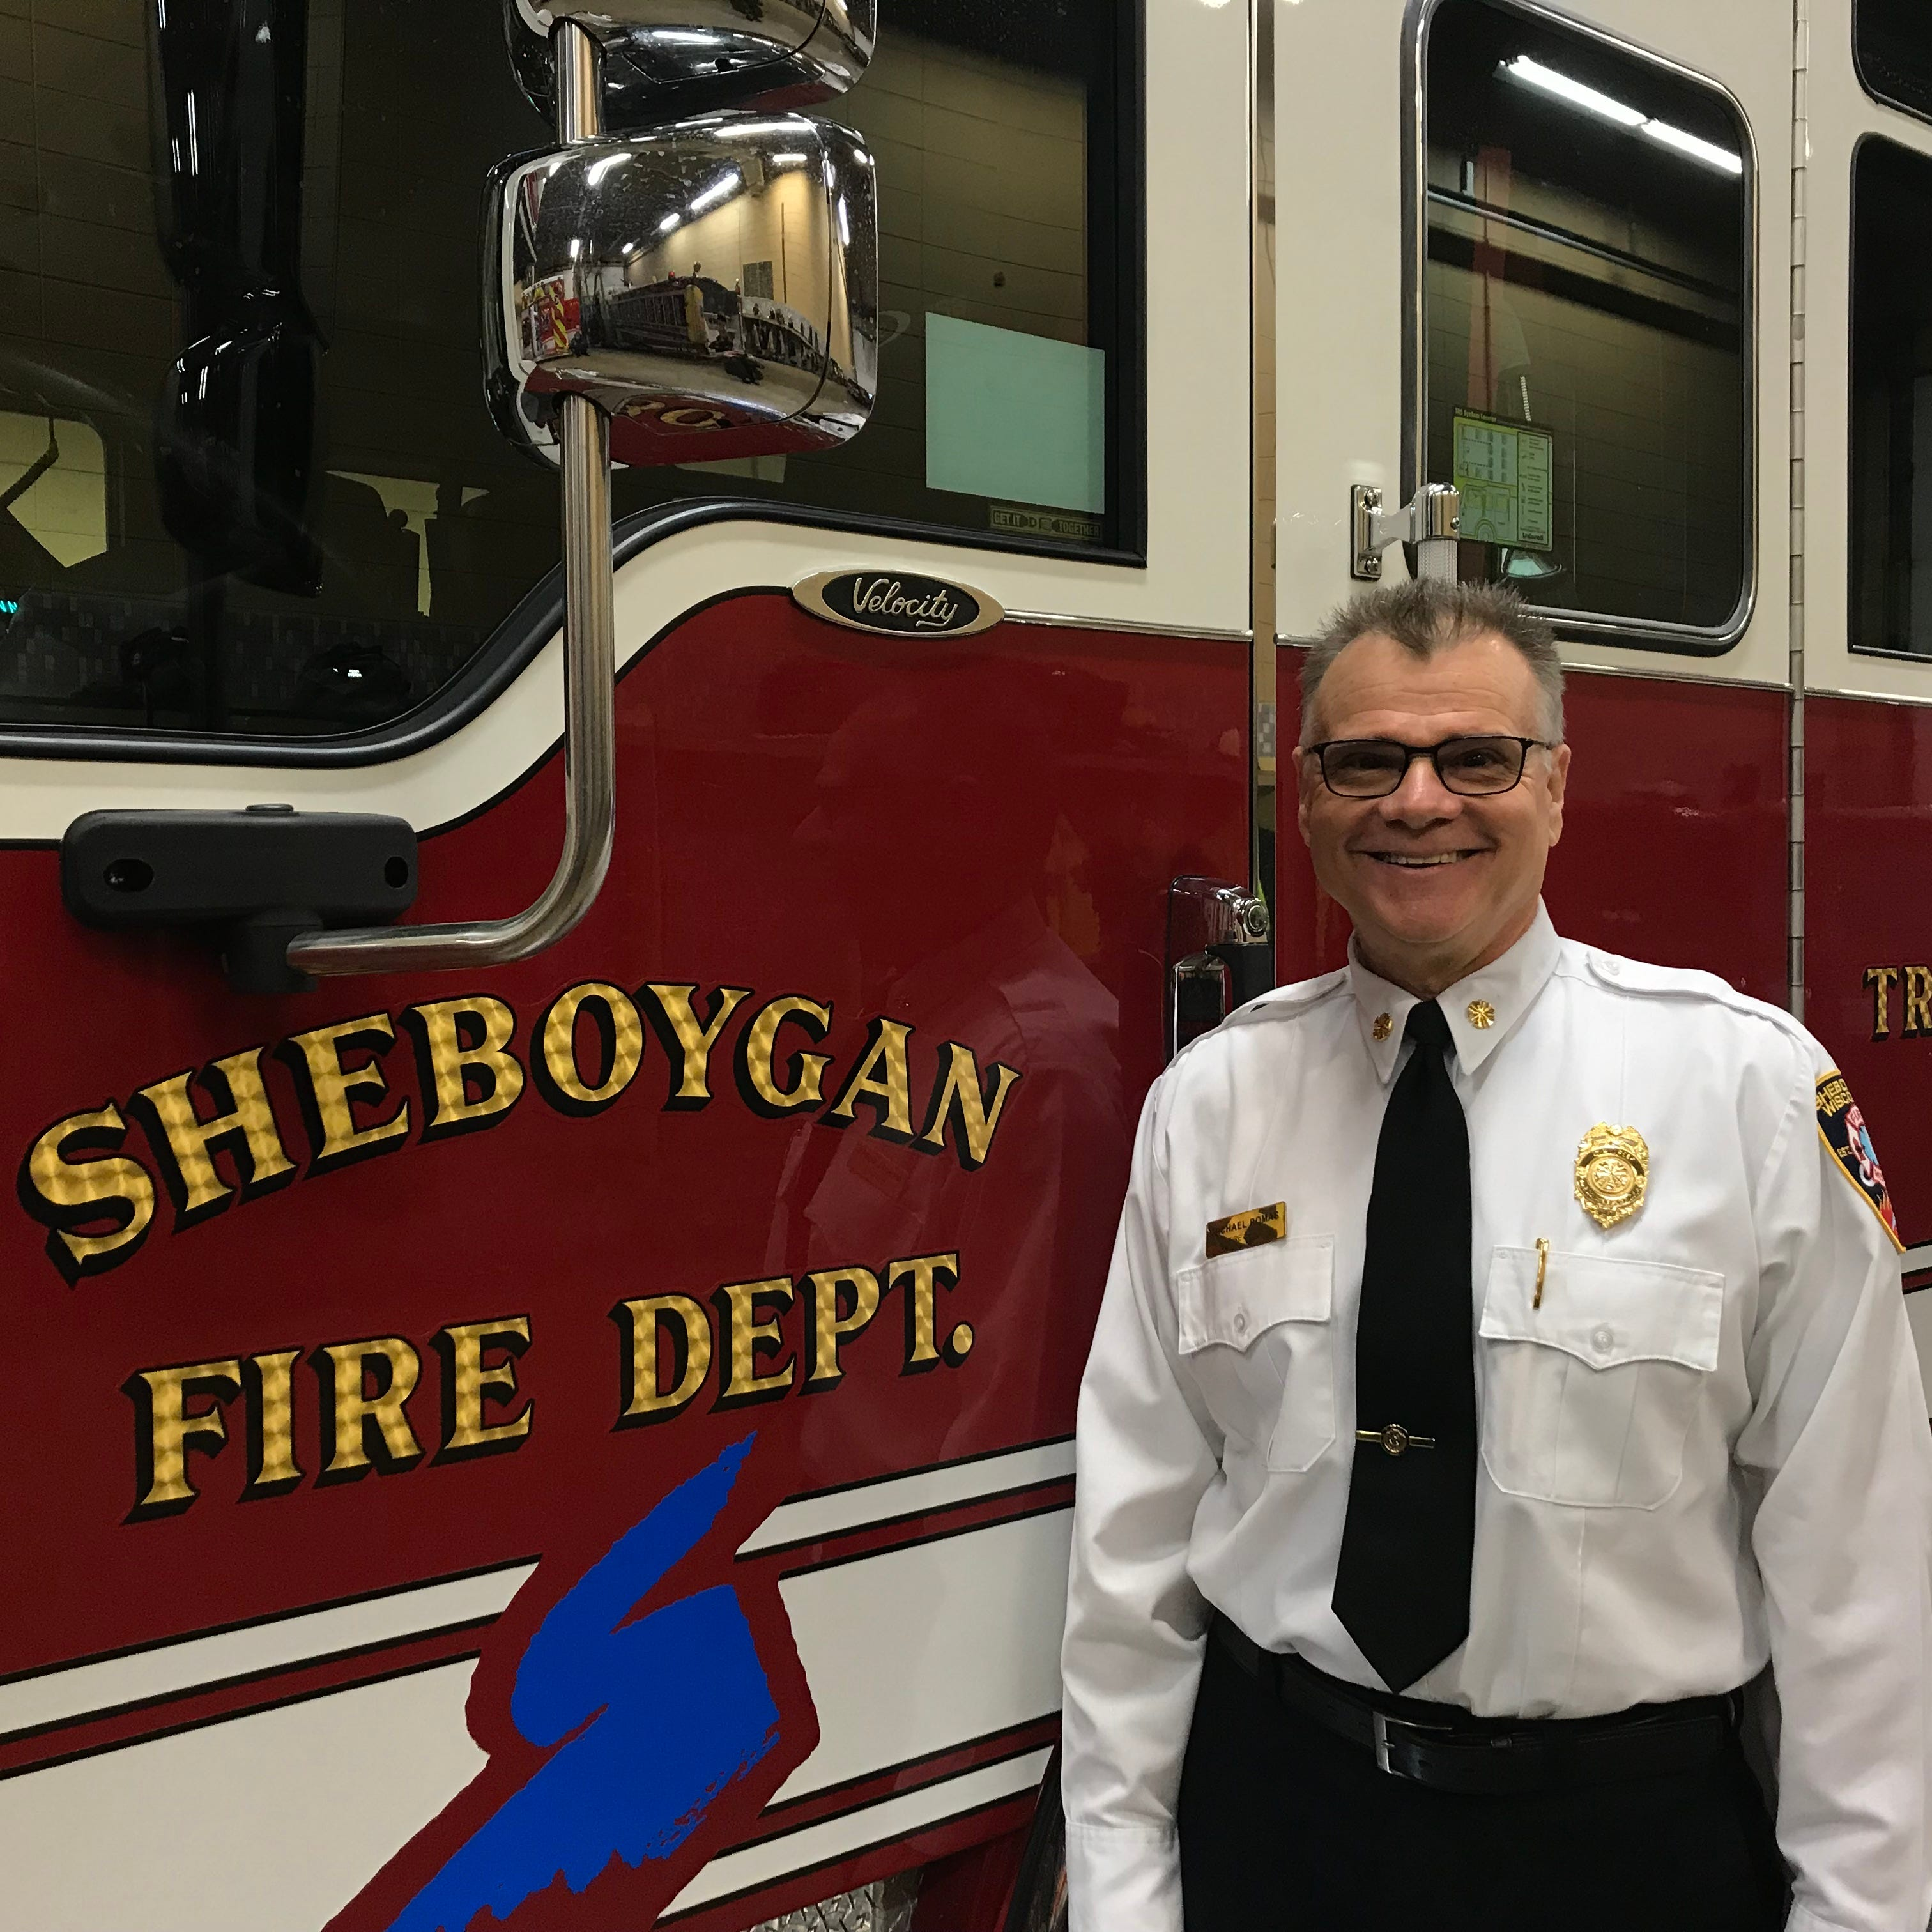 'It's been an absolute unbelievable experience': Sheboygan Fire chief reflects on career